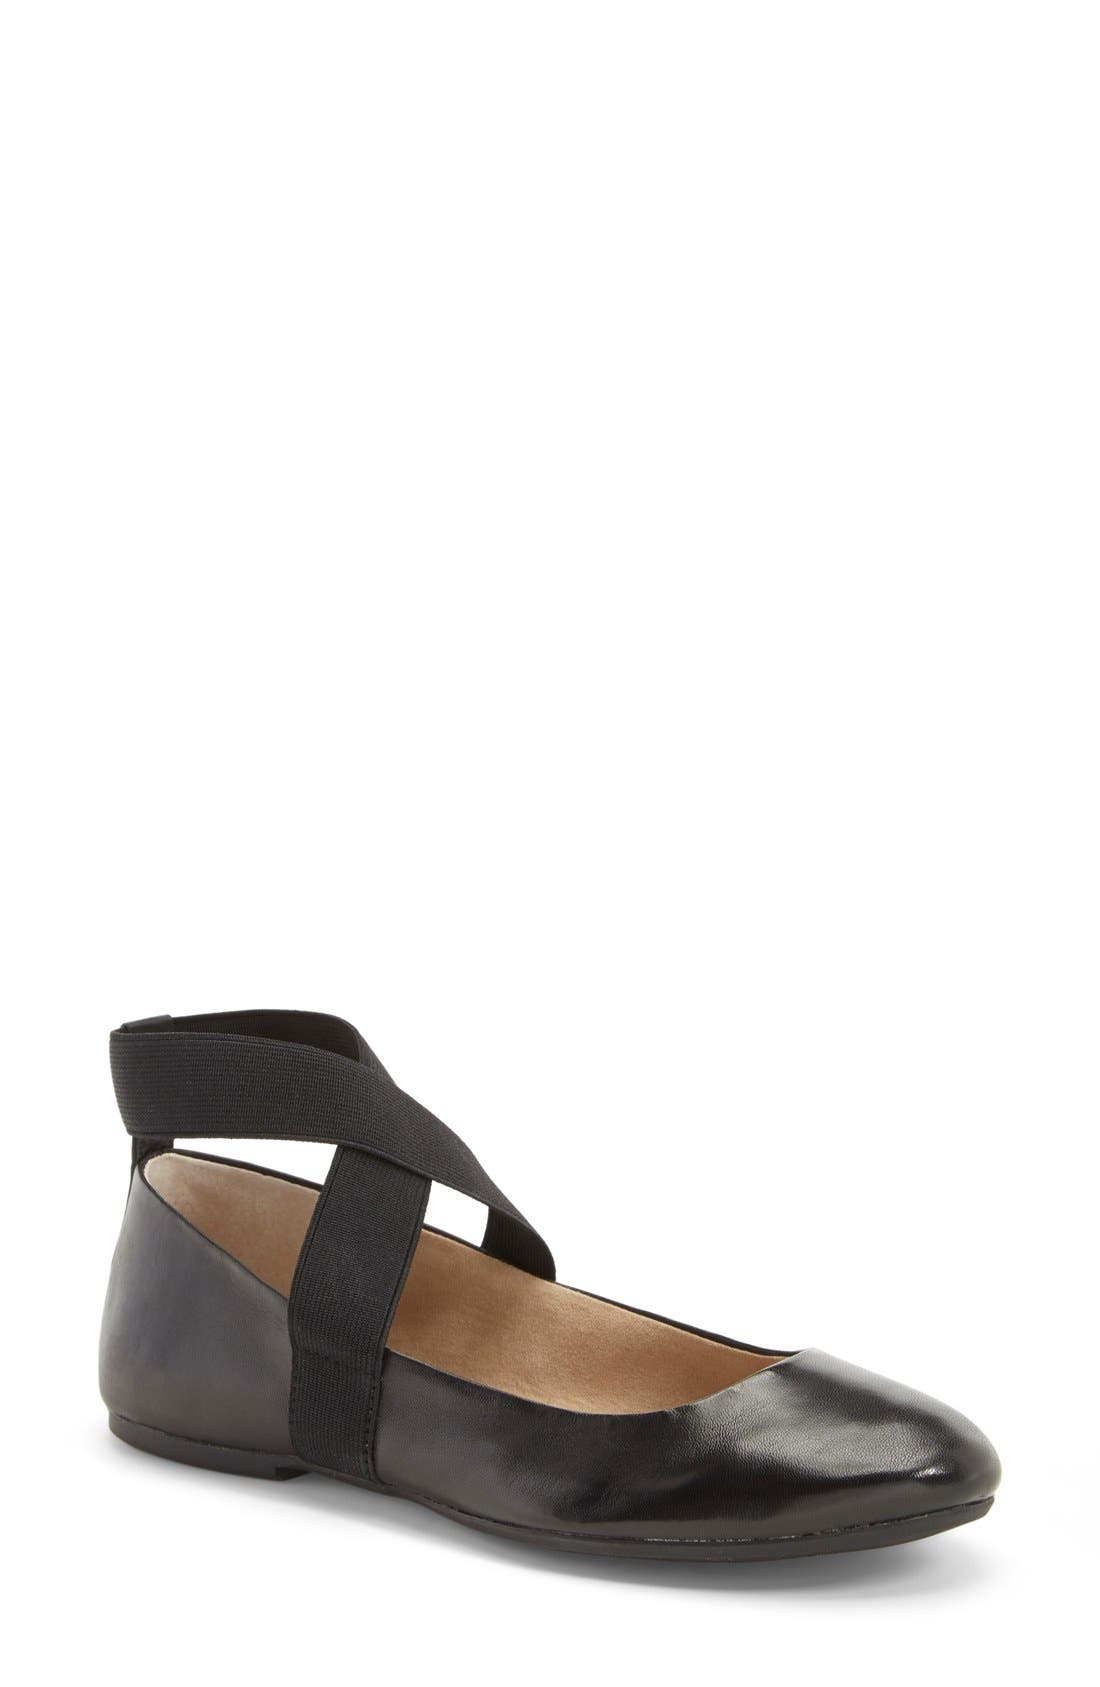 'Mariza' Ballet Flat,                         Main,                         color, 001